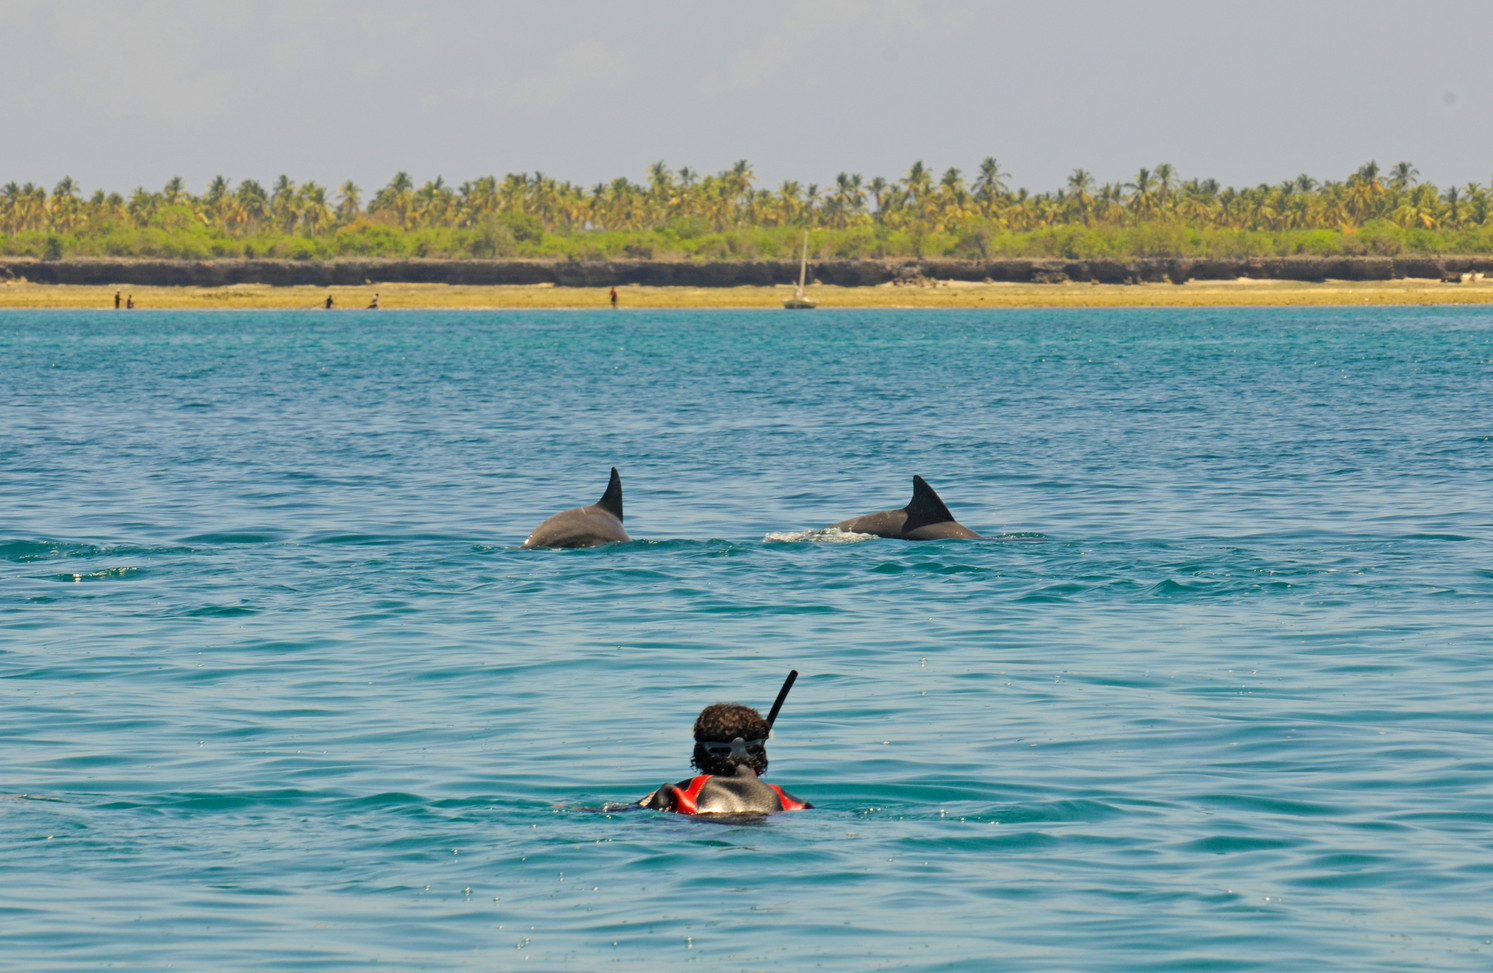 Tanzania Fanjove Island Swimming with dolphins